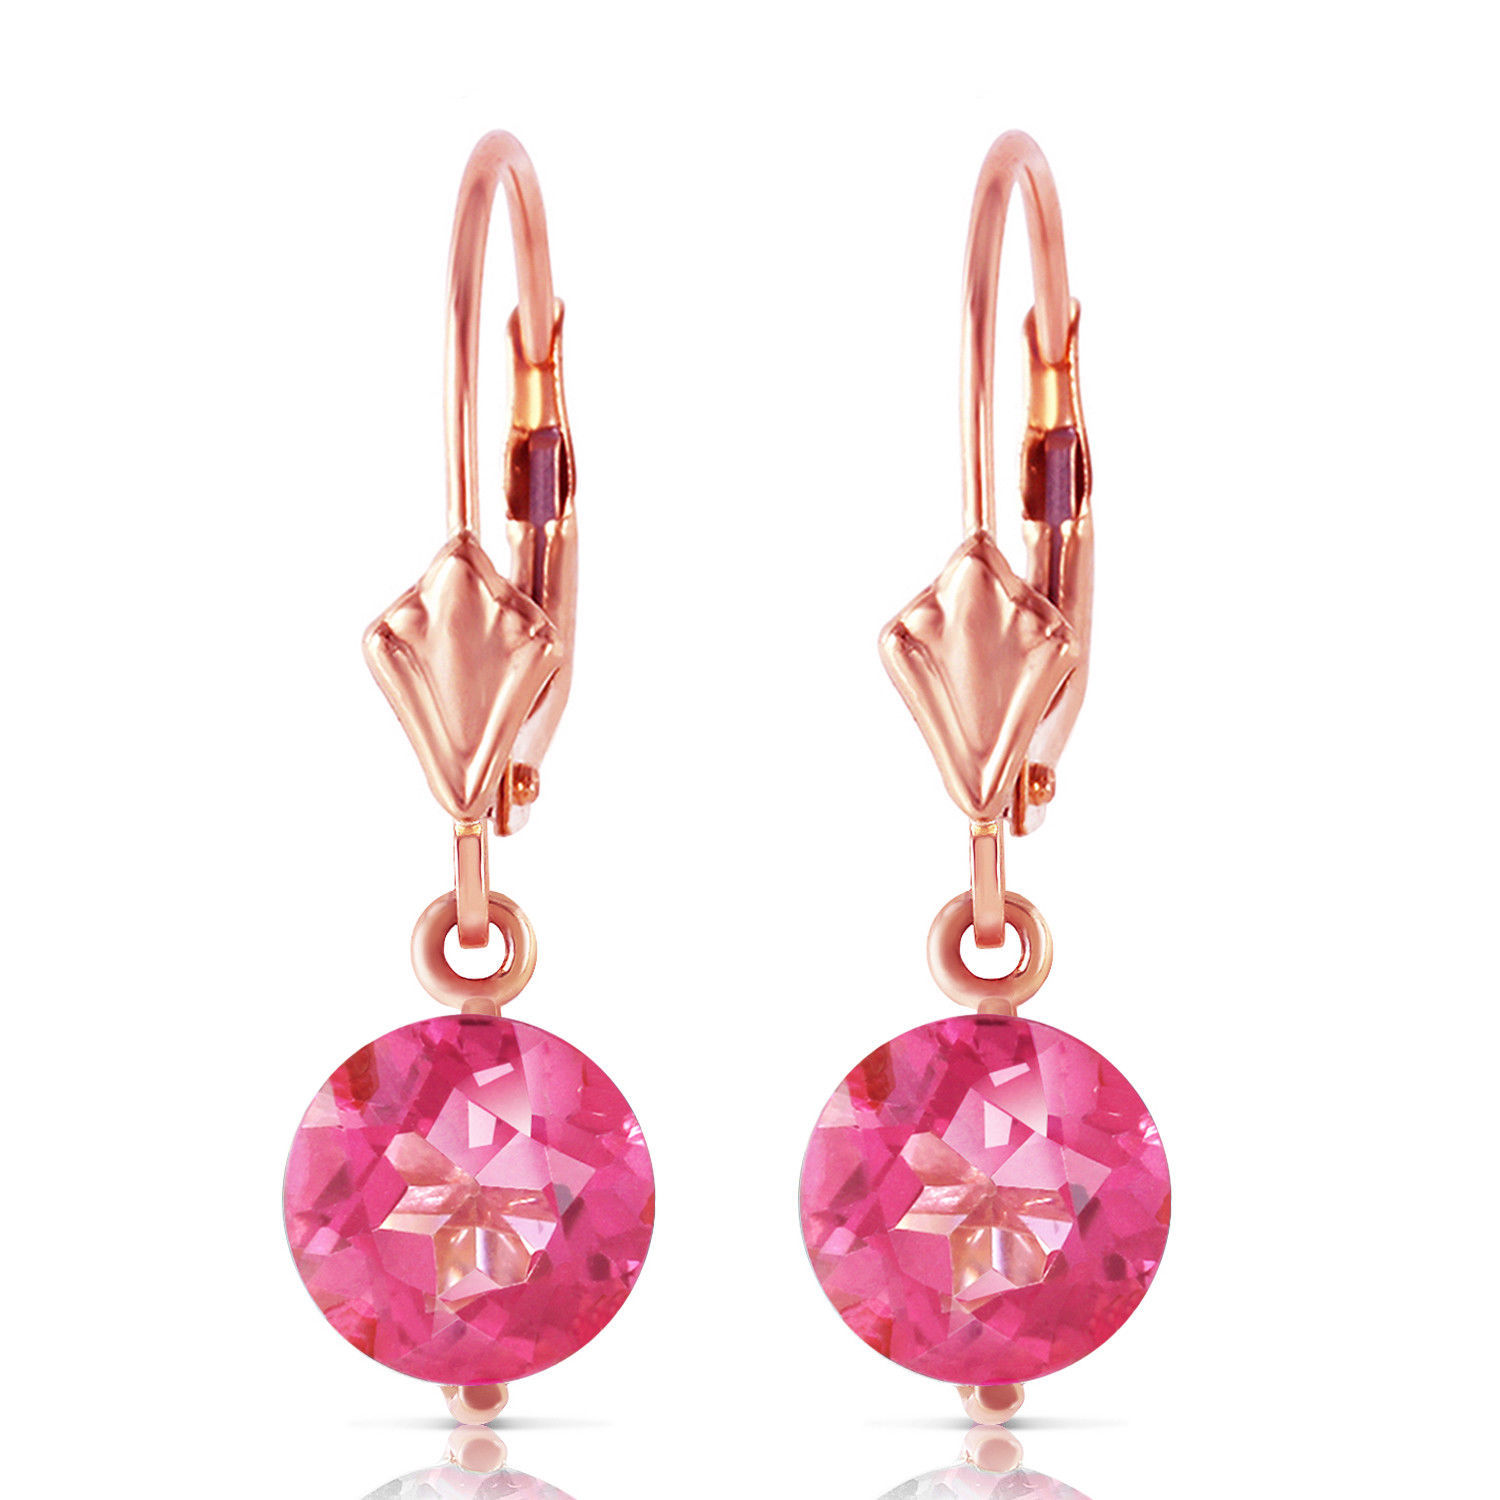 Primary image for 3.1 Carat 14K Solid Rose Gold Youth Pink Topaz Earrings Womens Natural Gemstone